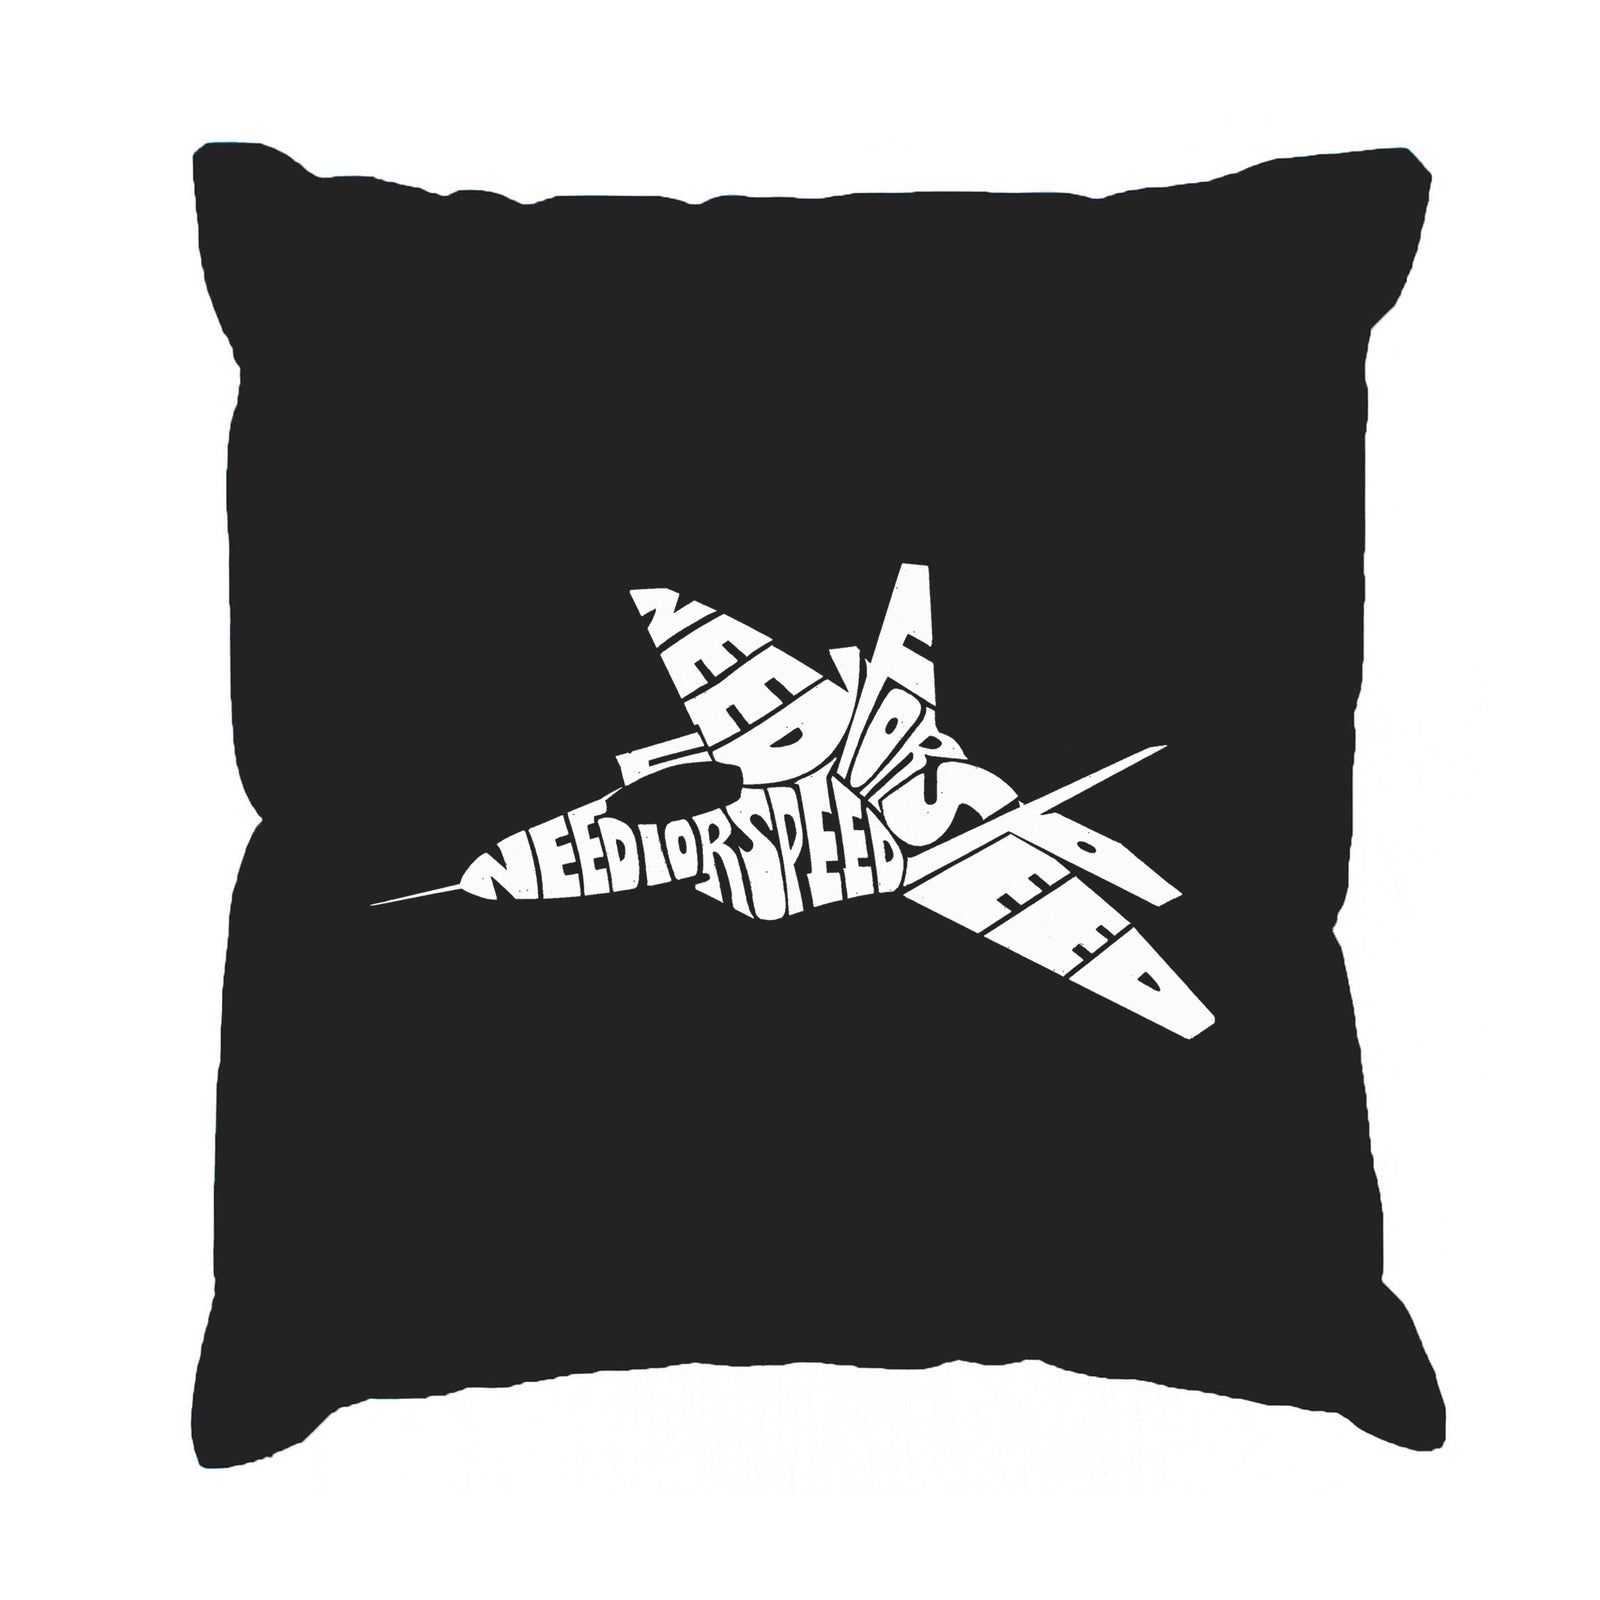 Throw Pillow Cover - FIGHTER JET - NEED FOR SPEED